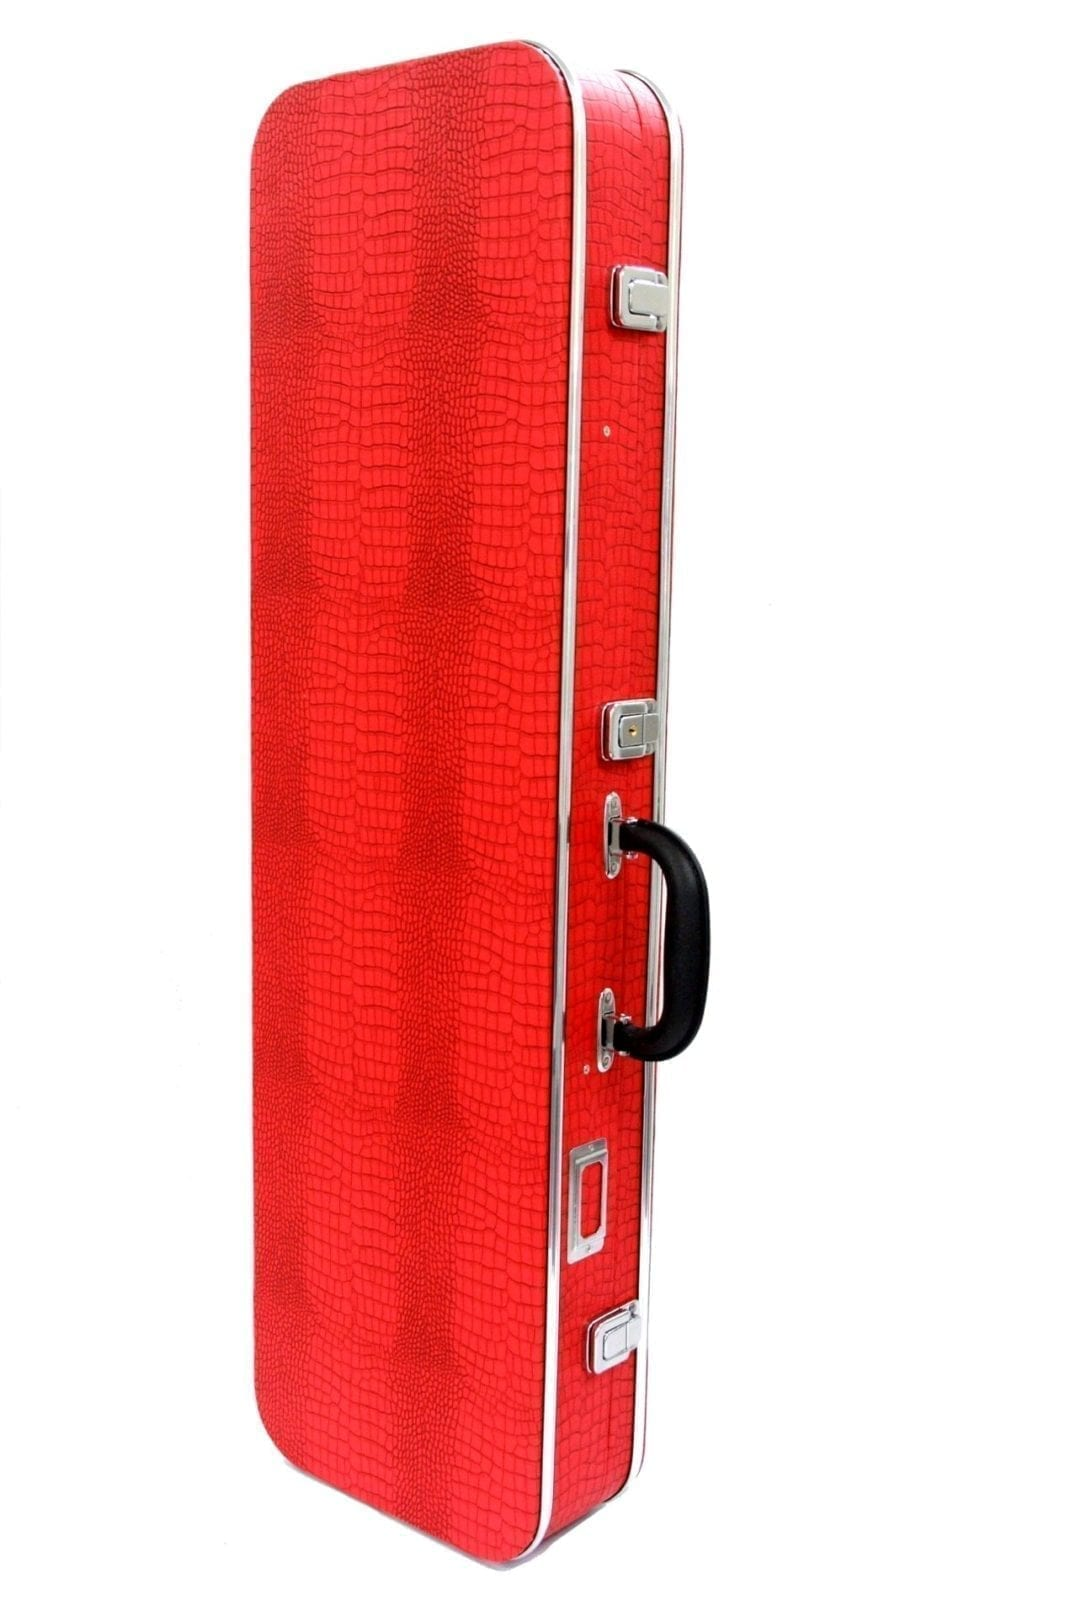 Sanshin Hard Case - Crocodile pattern - Red